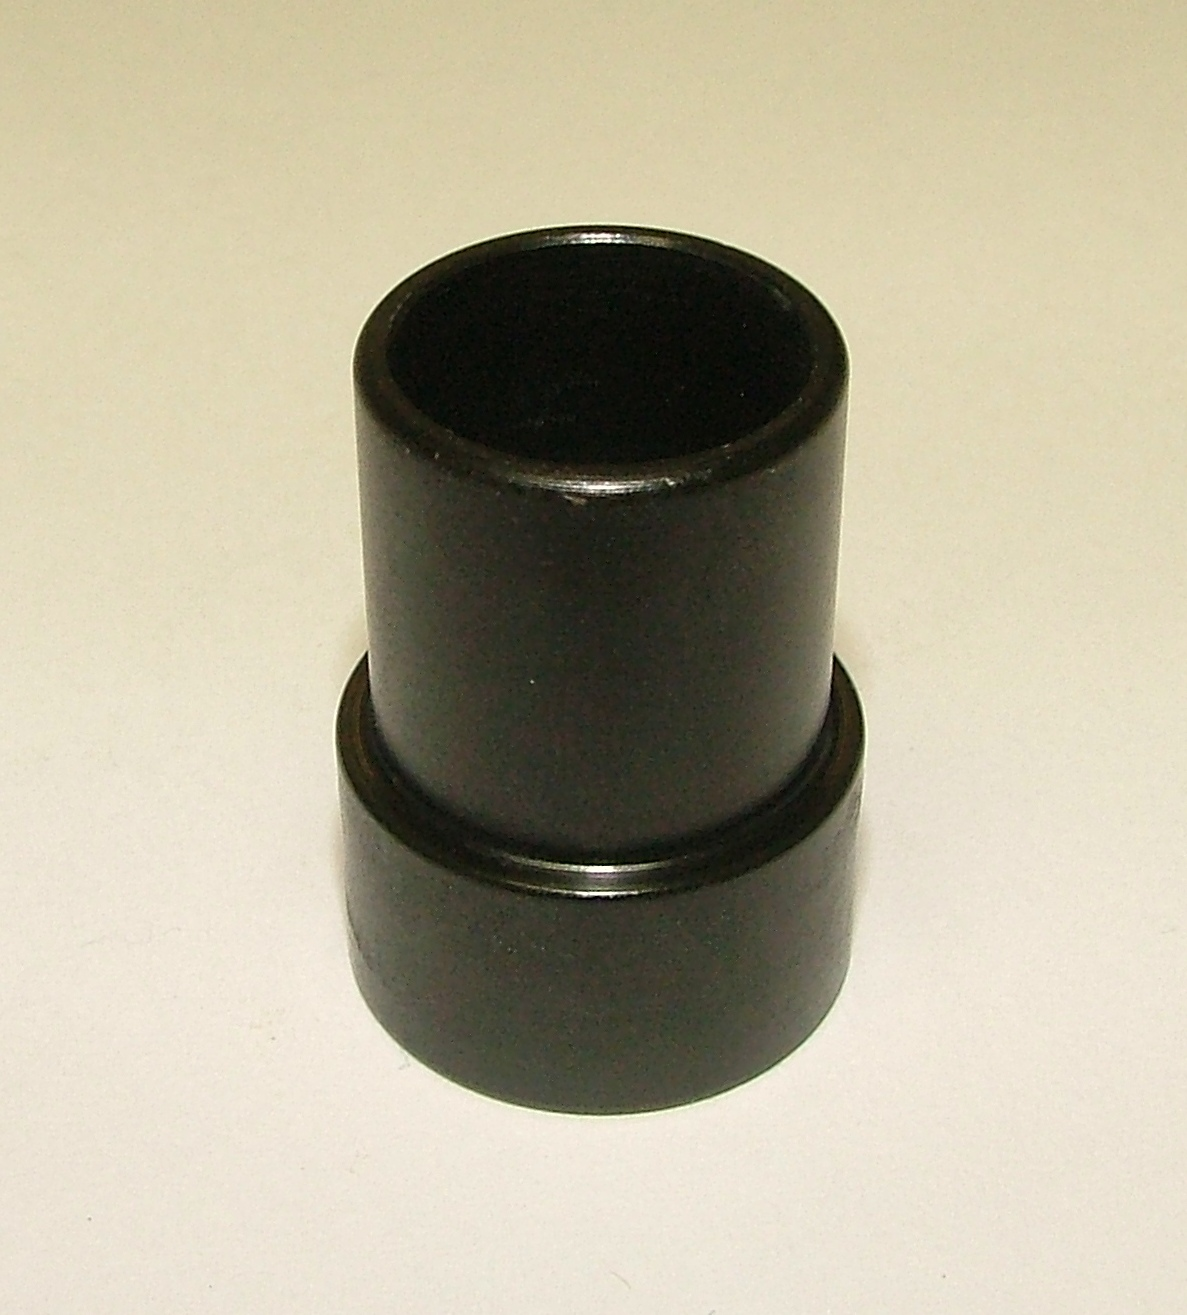 1/2 Idler Arm Bushing (Reducer Sleeve)